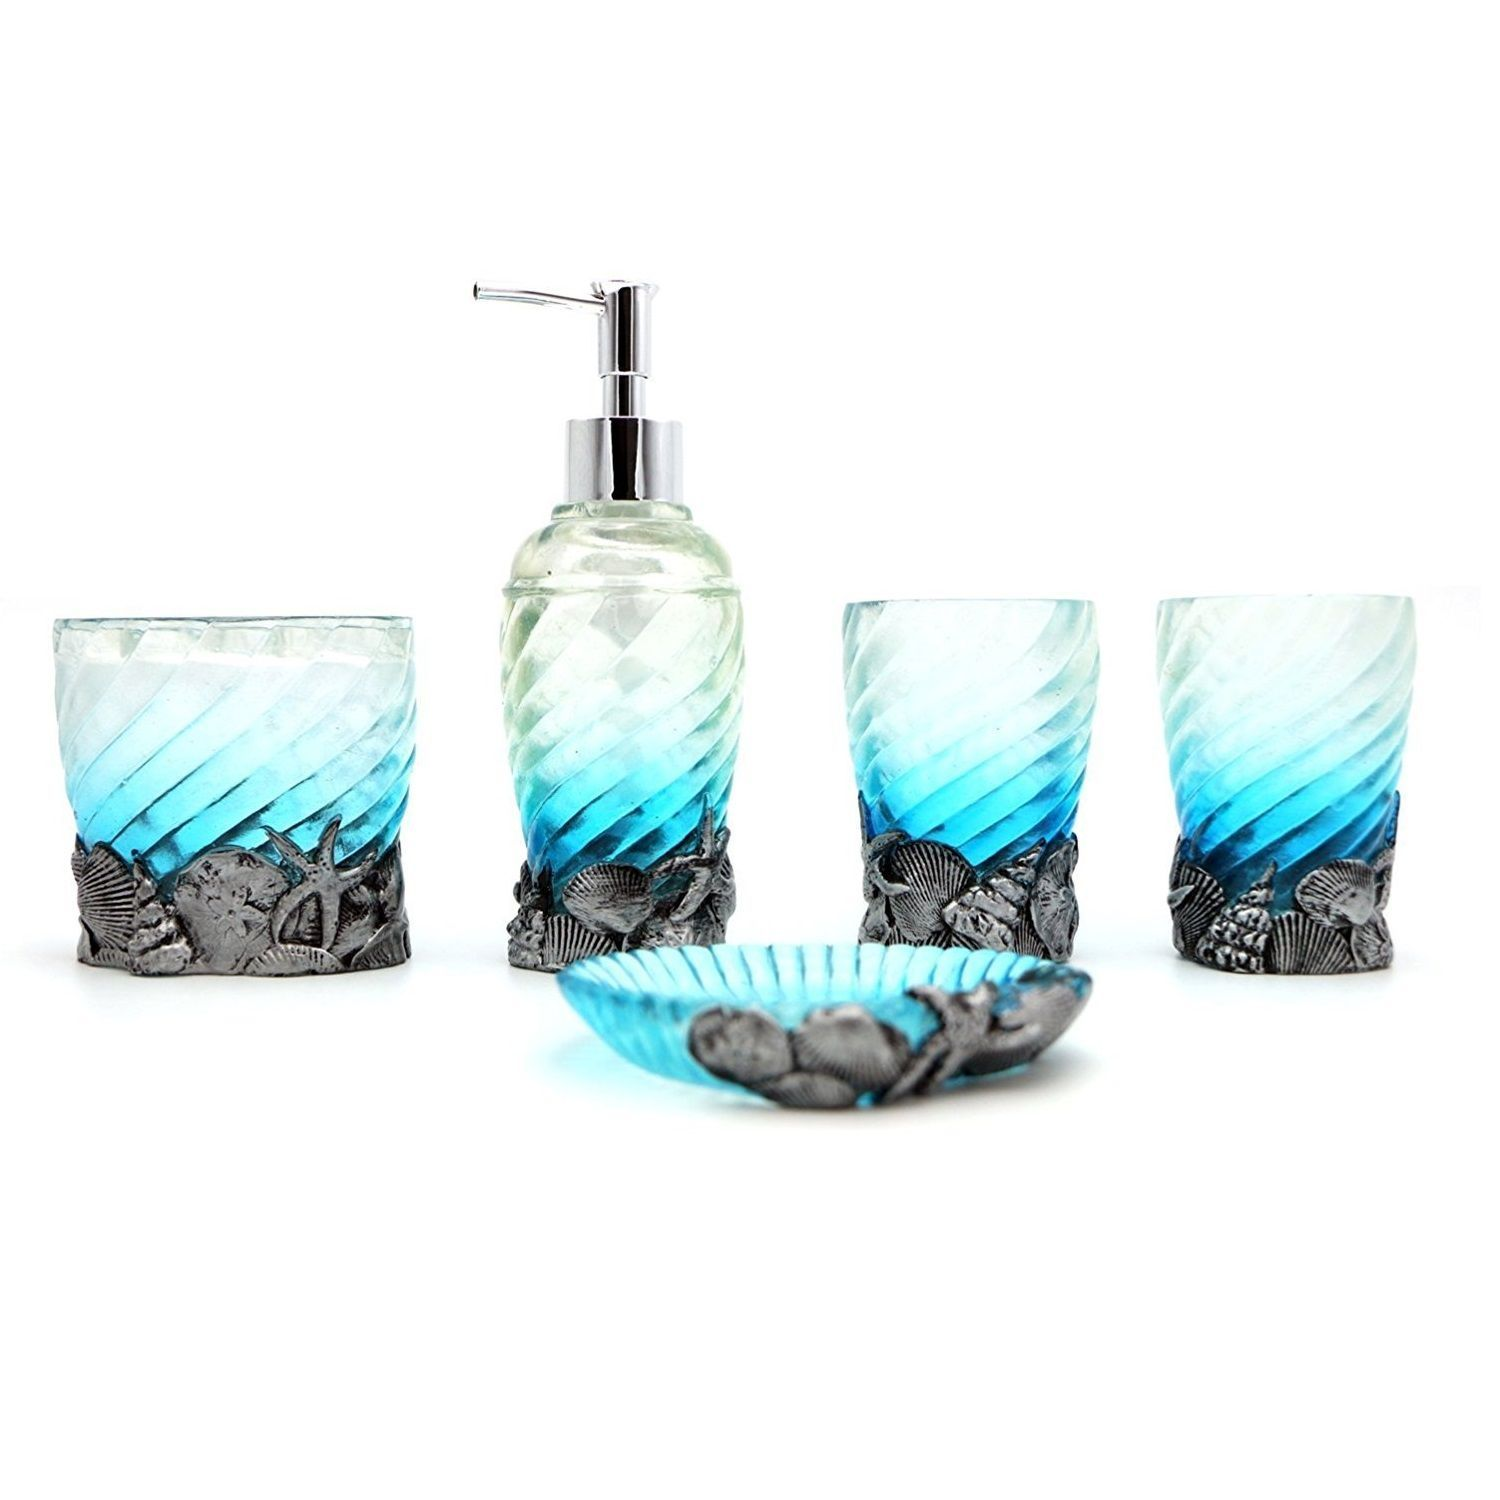 Beach Themed Bathroom Accessory Sets Discover The Best Coastal For Your Home